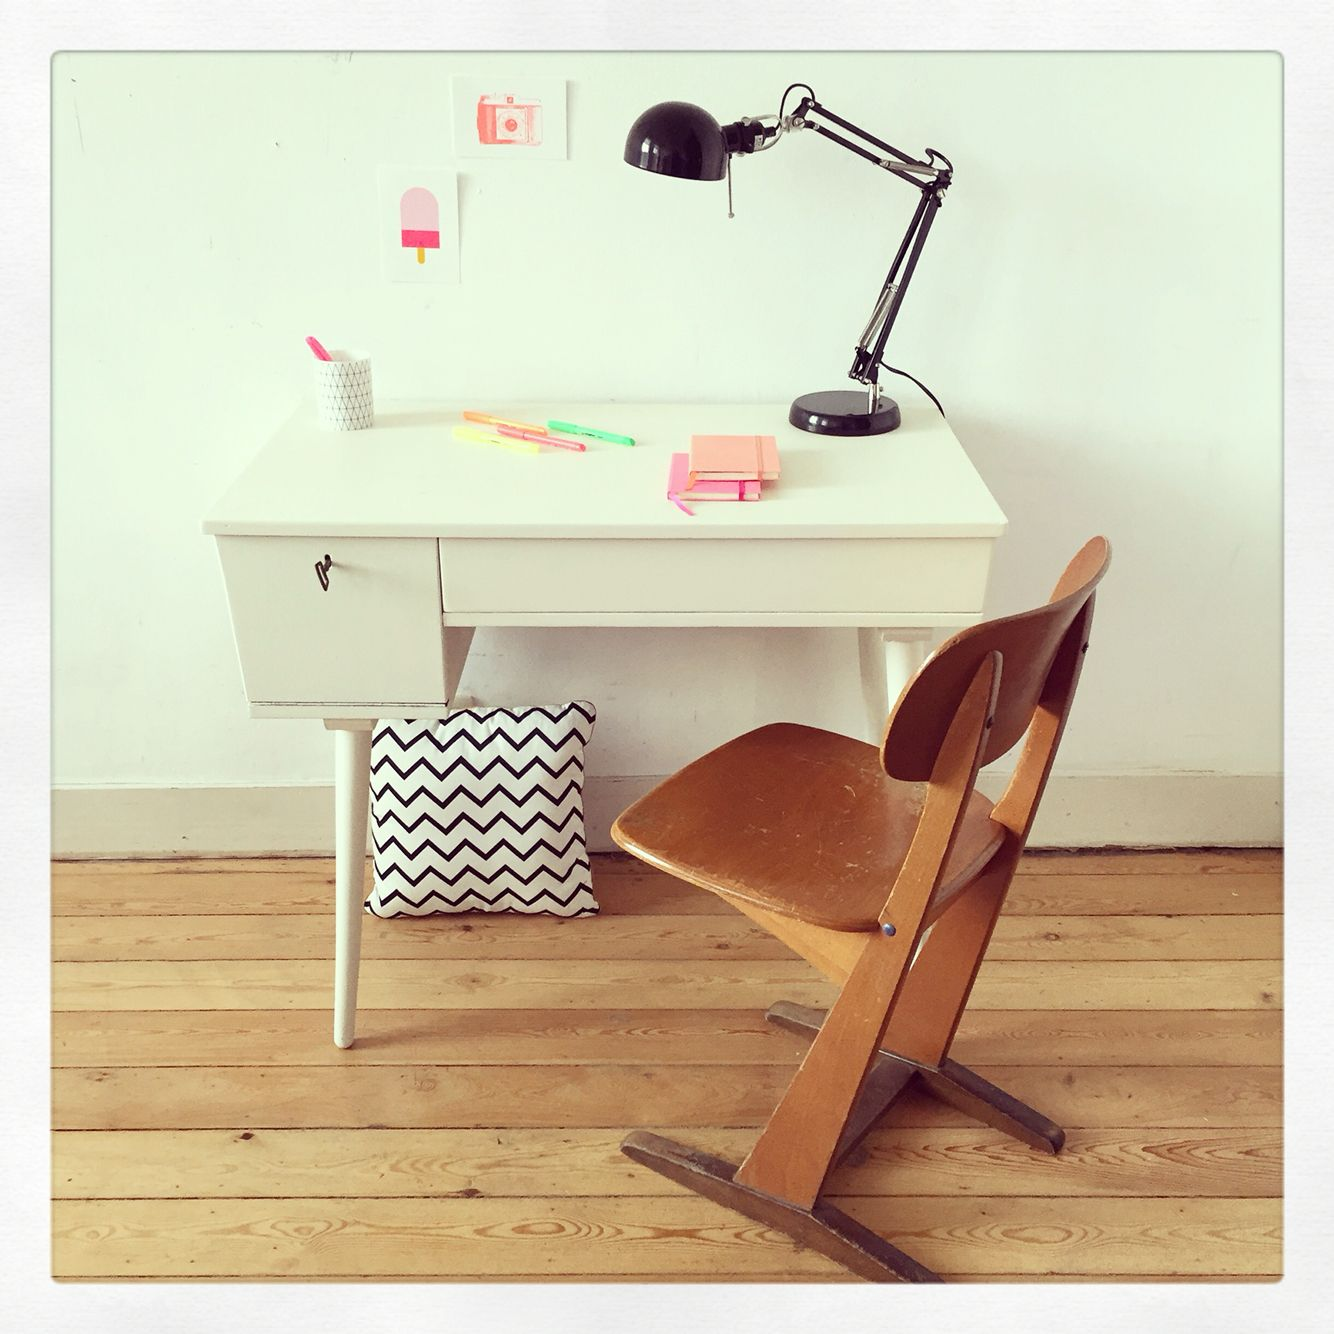 Refurbished white vintage desk selected and renovated by My Ex Boyfriend -www.myexboyfriend.info